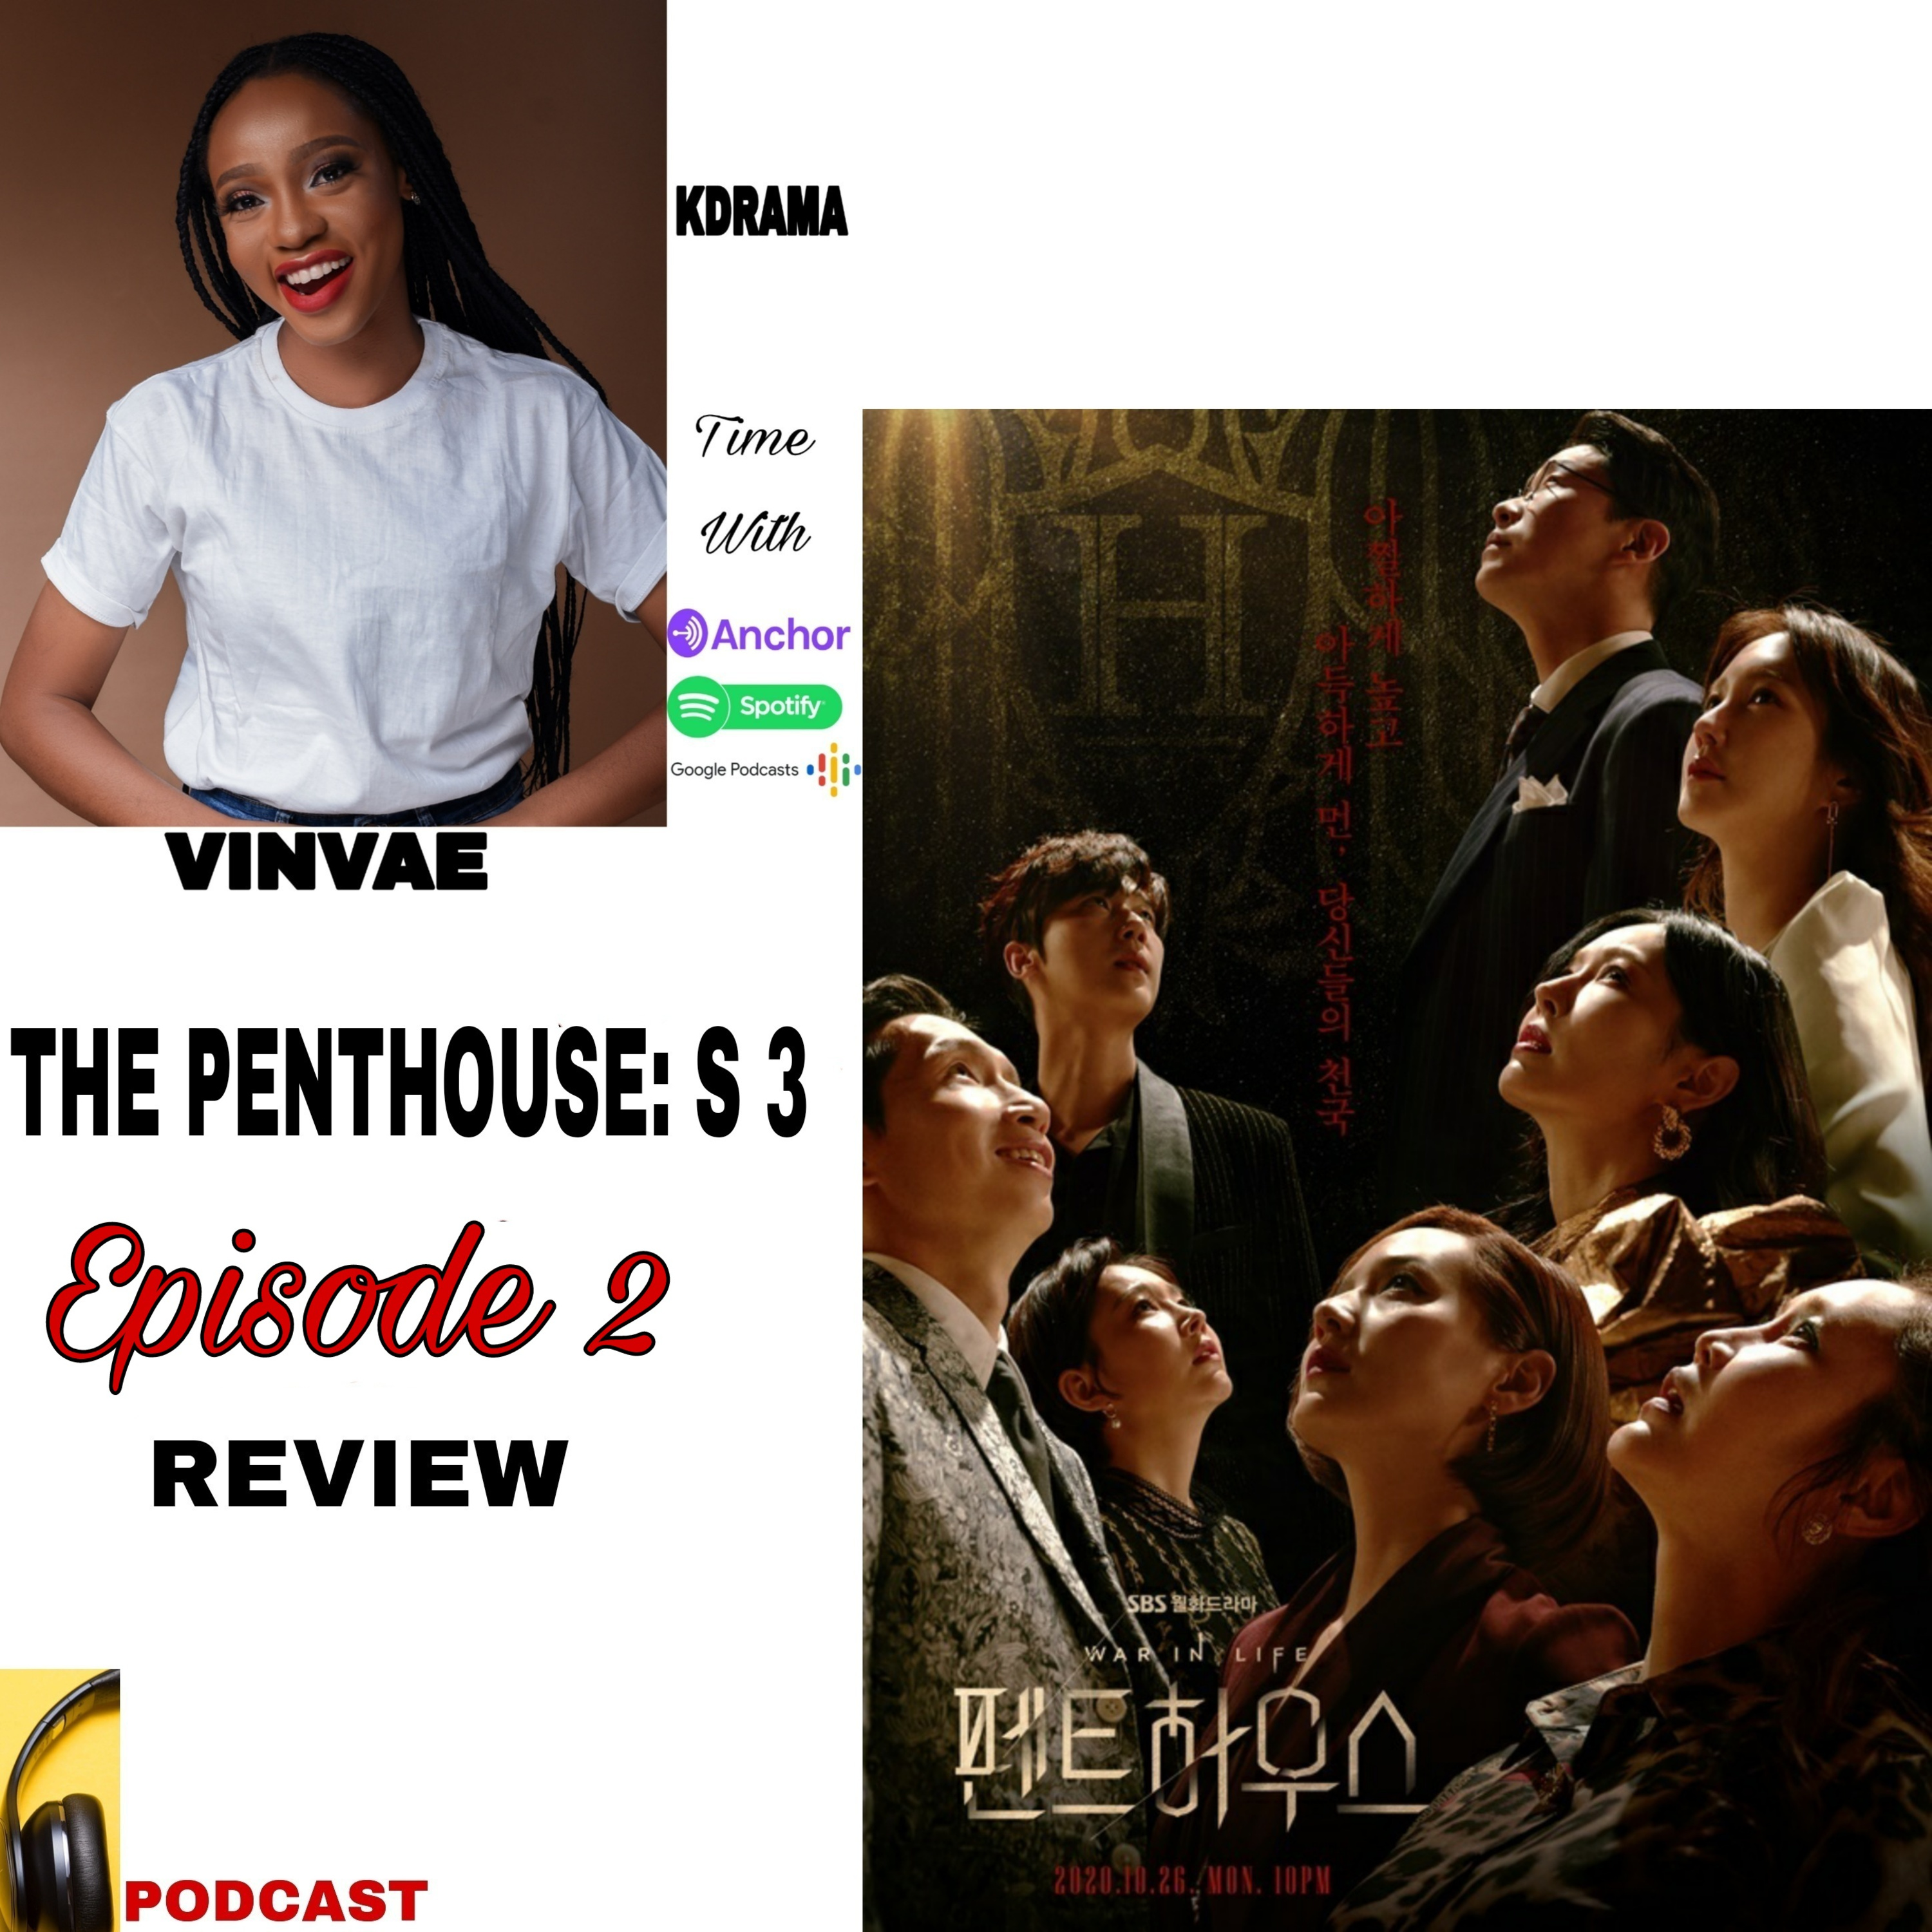 THE PENTHOUSE: WAR IN LIFE SEASON 3 ( EPISODE 2 REVIEW )